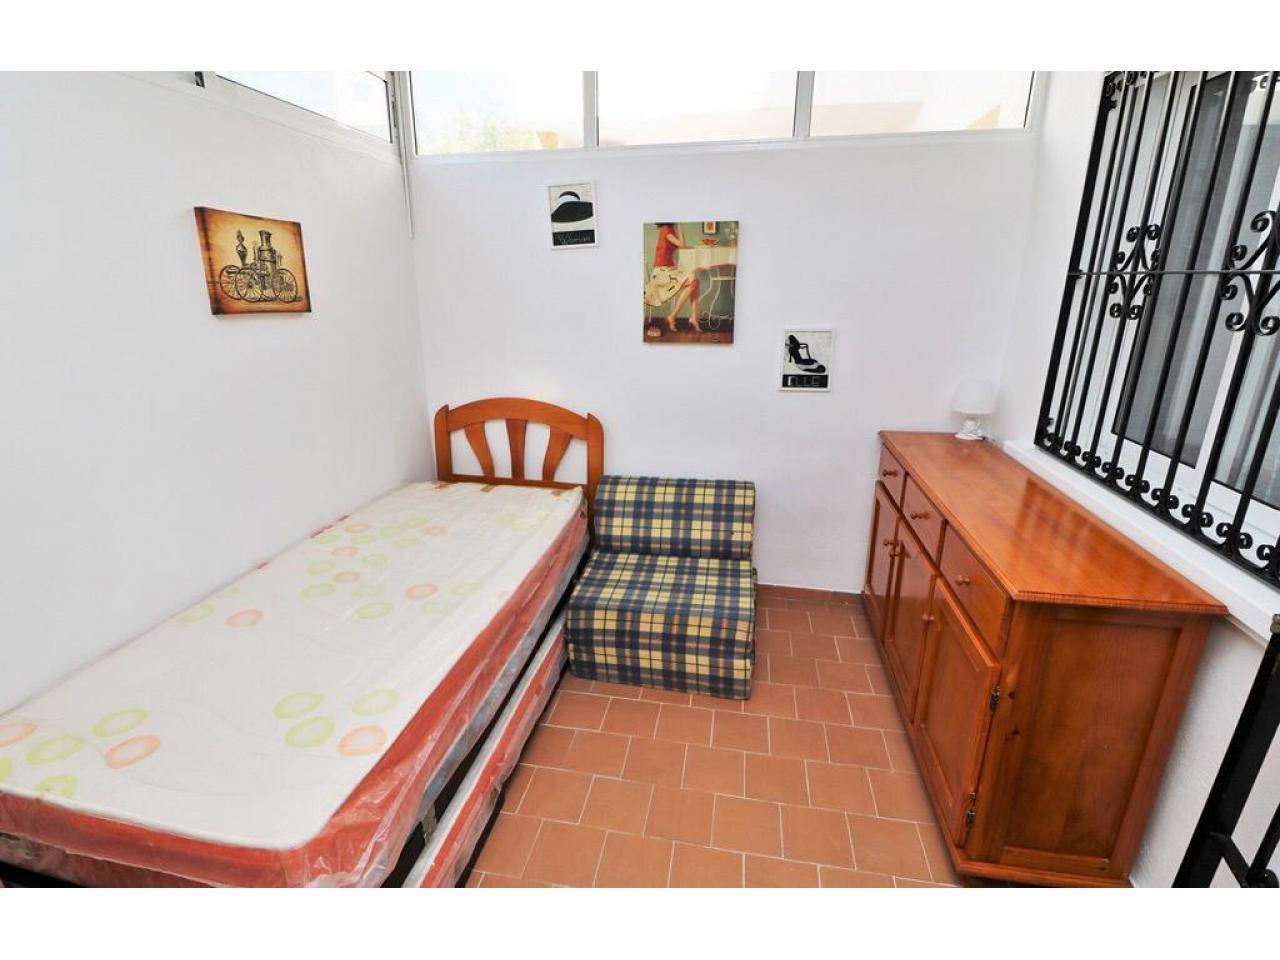 Apartment in Torrevieja, Spain for rent - 5